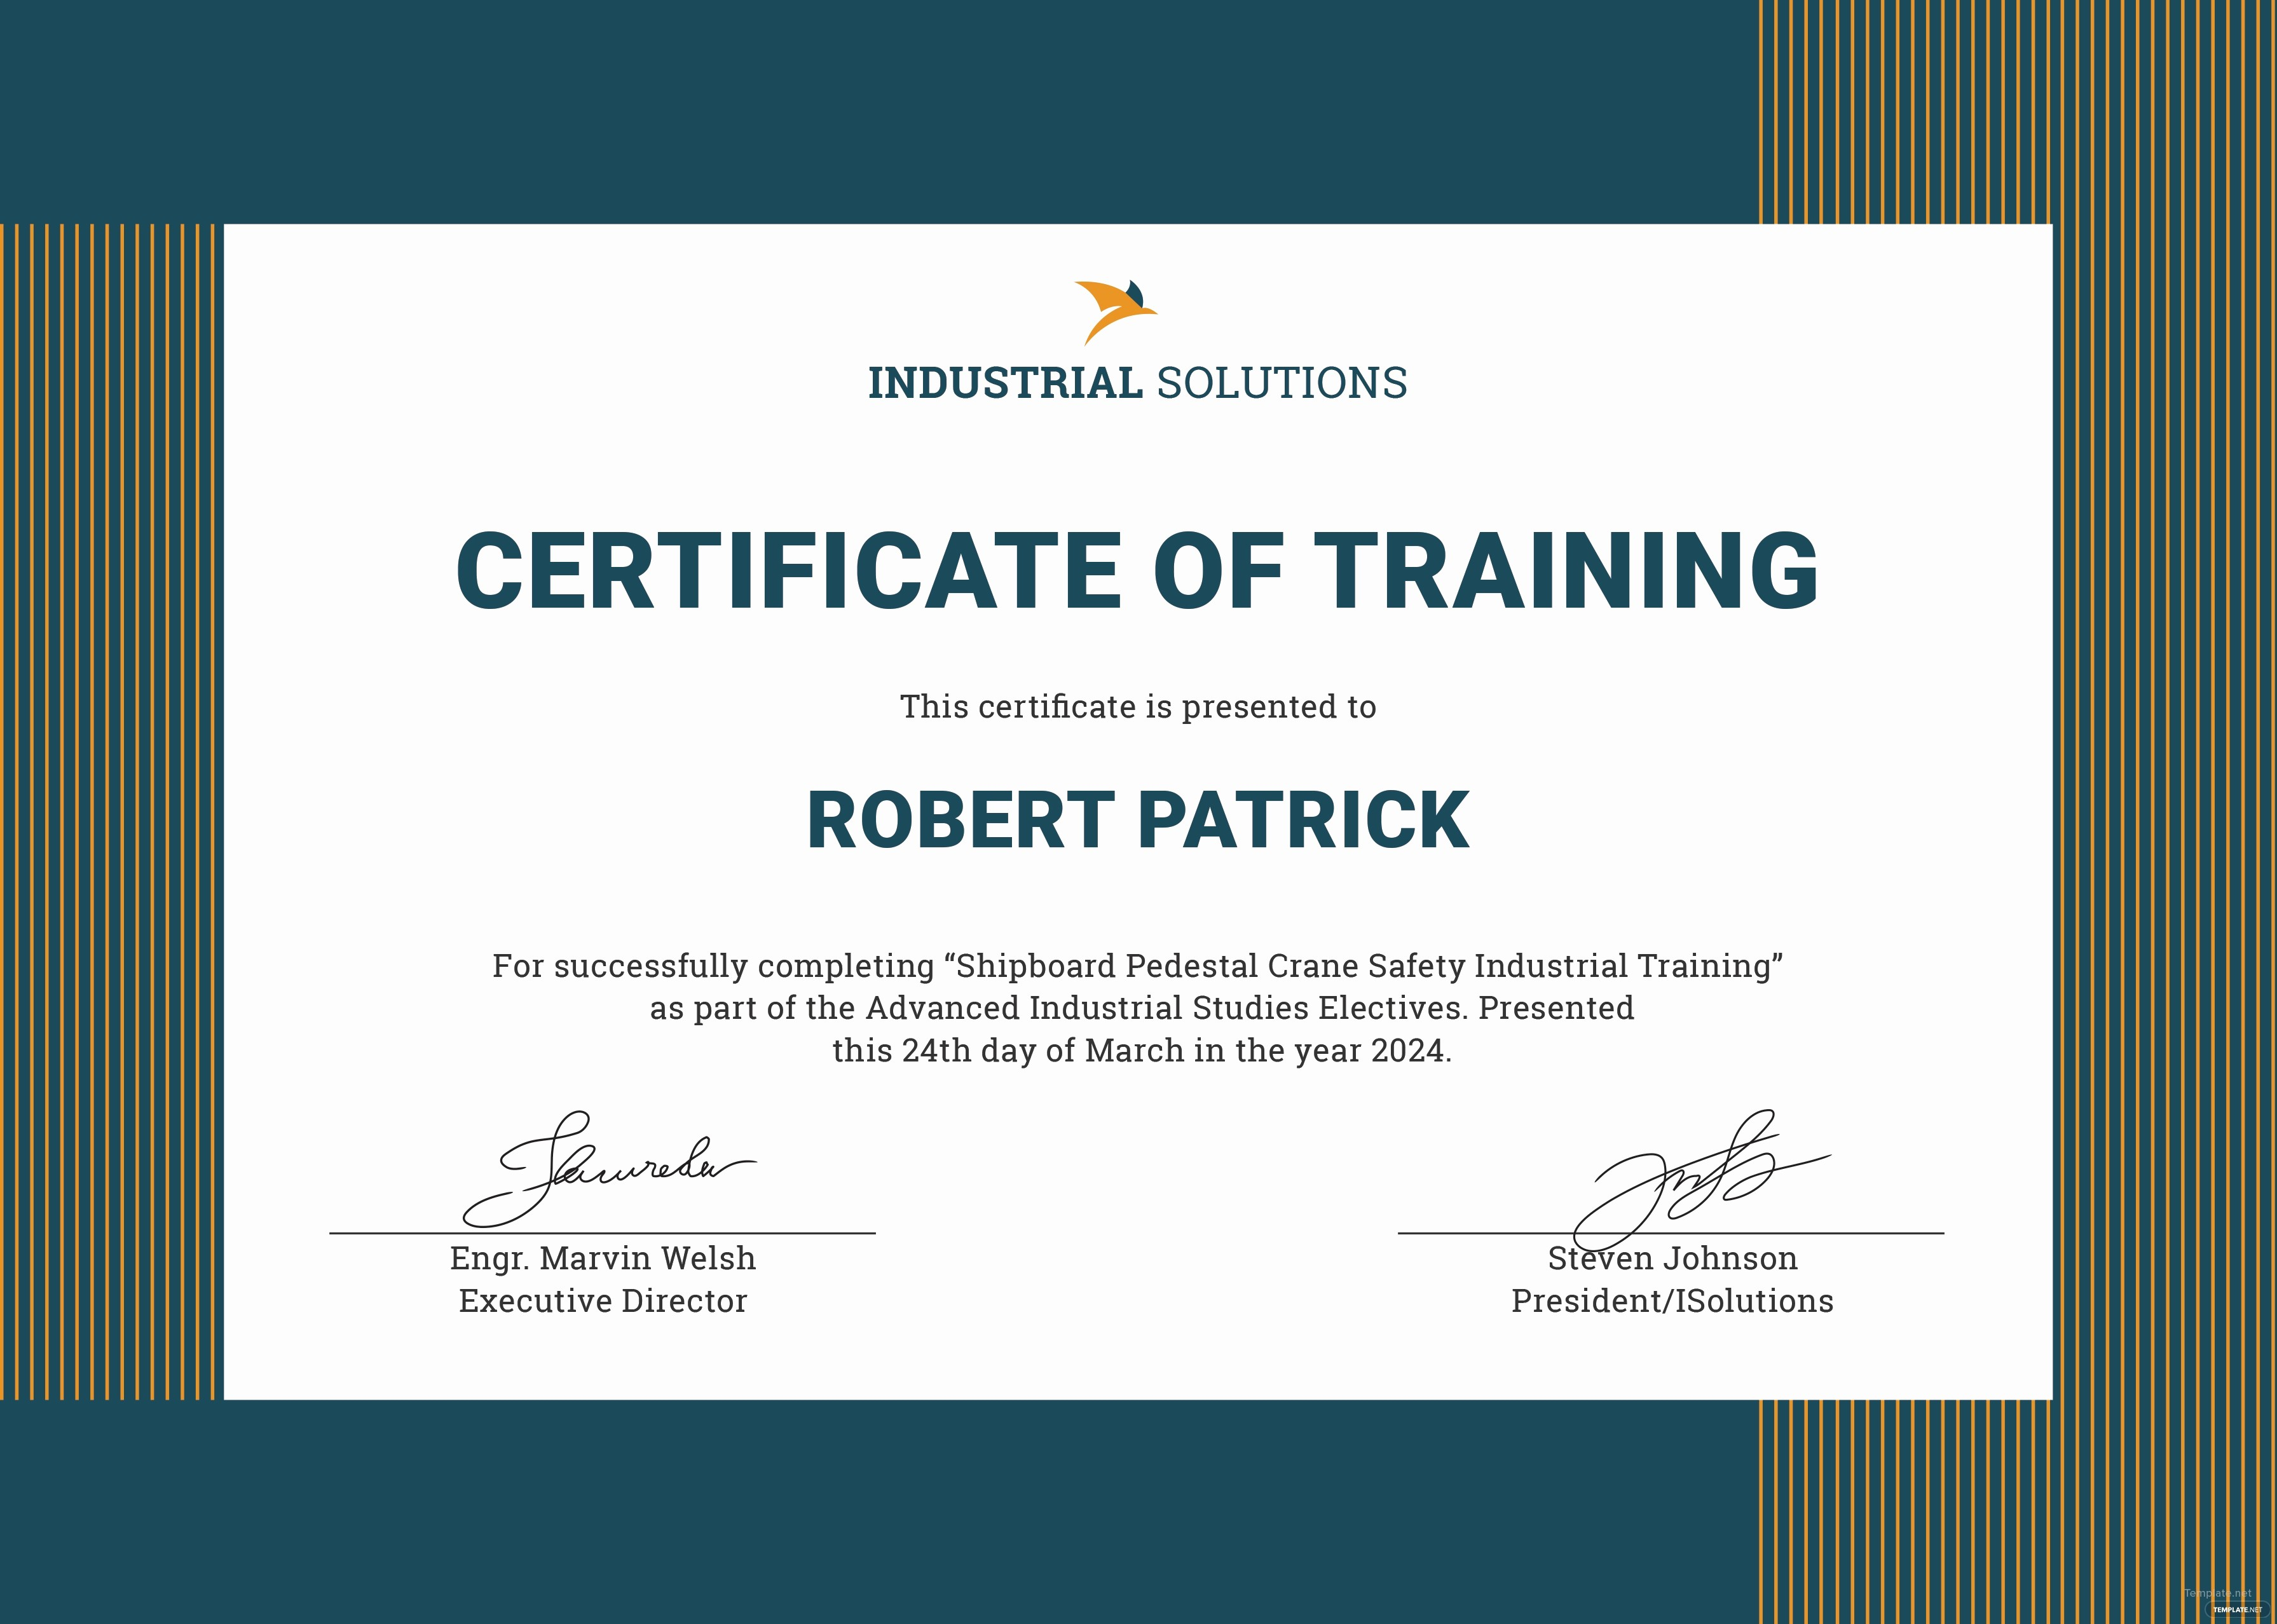 Certificate Of Training Template Word Lovely Free Industrial Training Certificate Template In Adobe